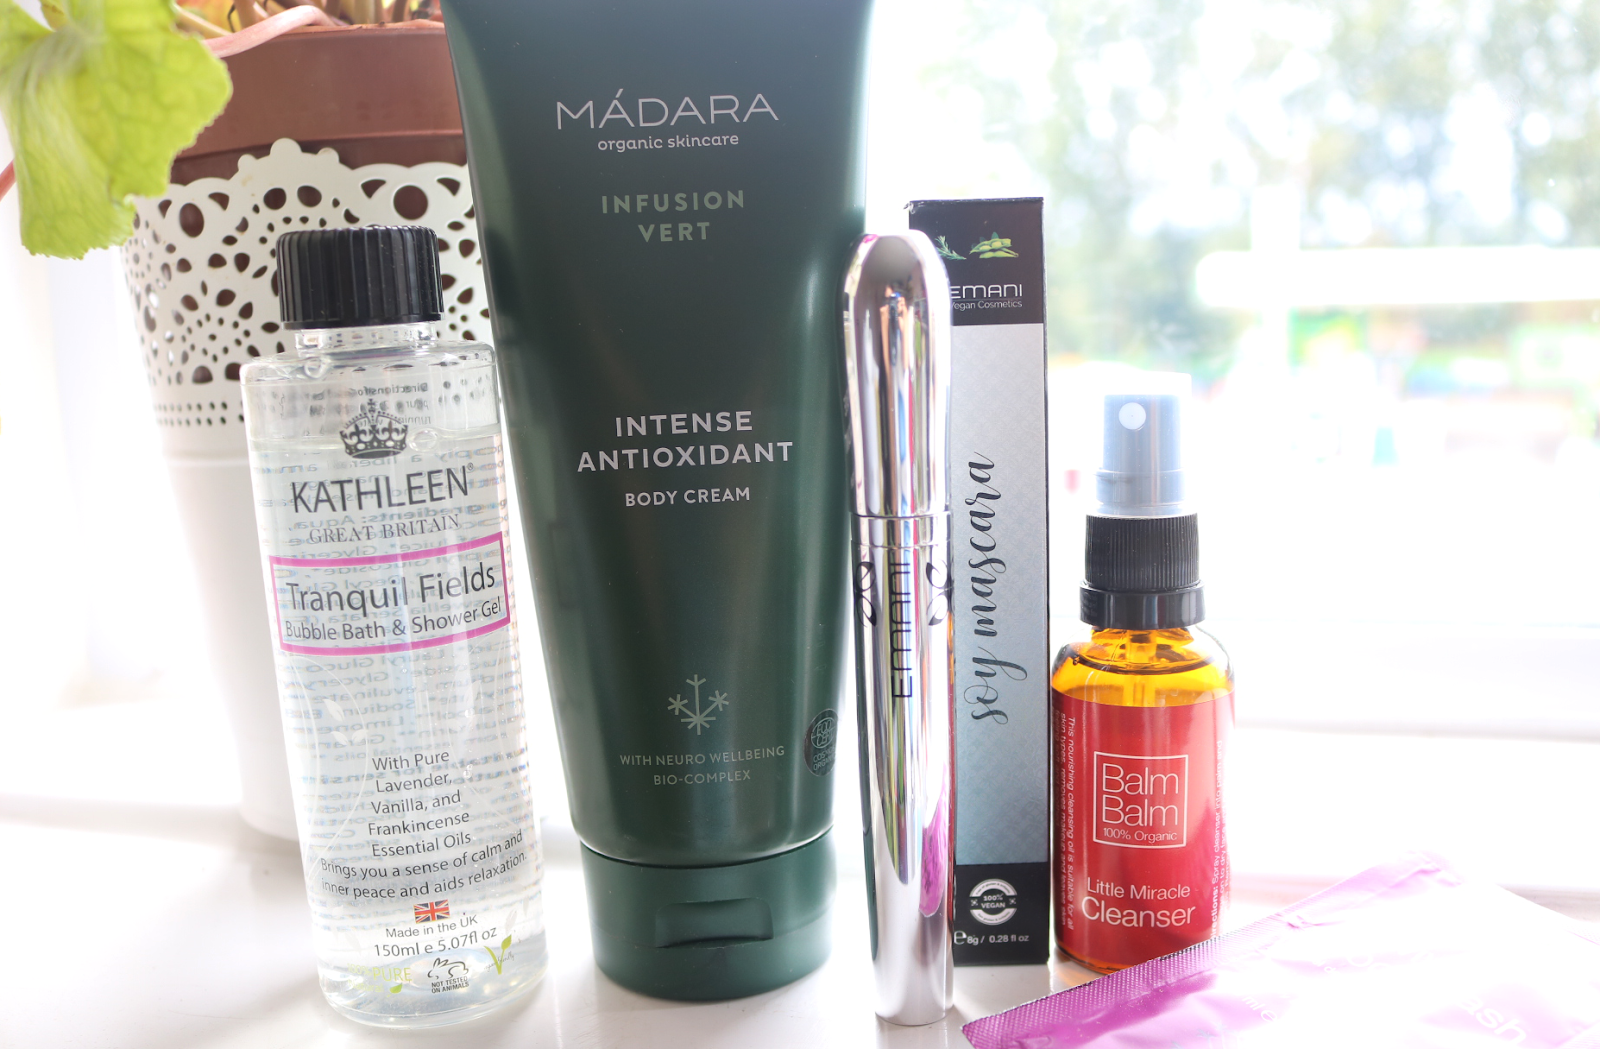 LoveLula Beauty Box - September 2019 review